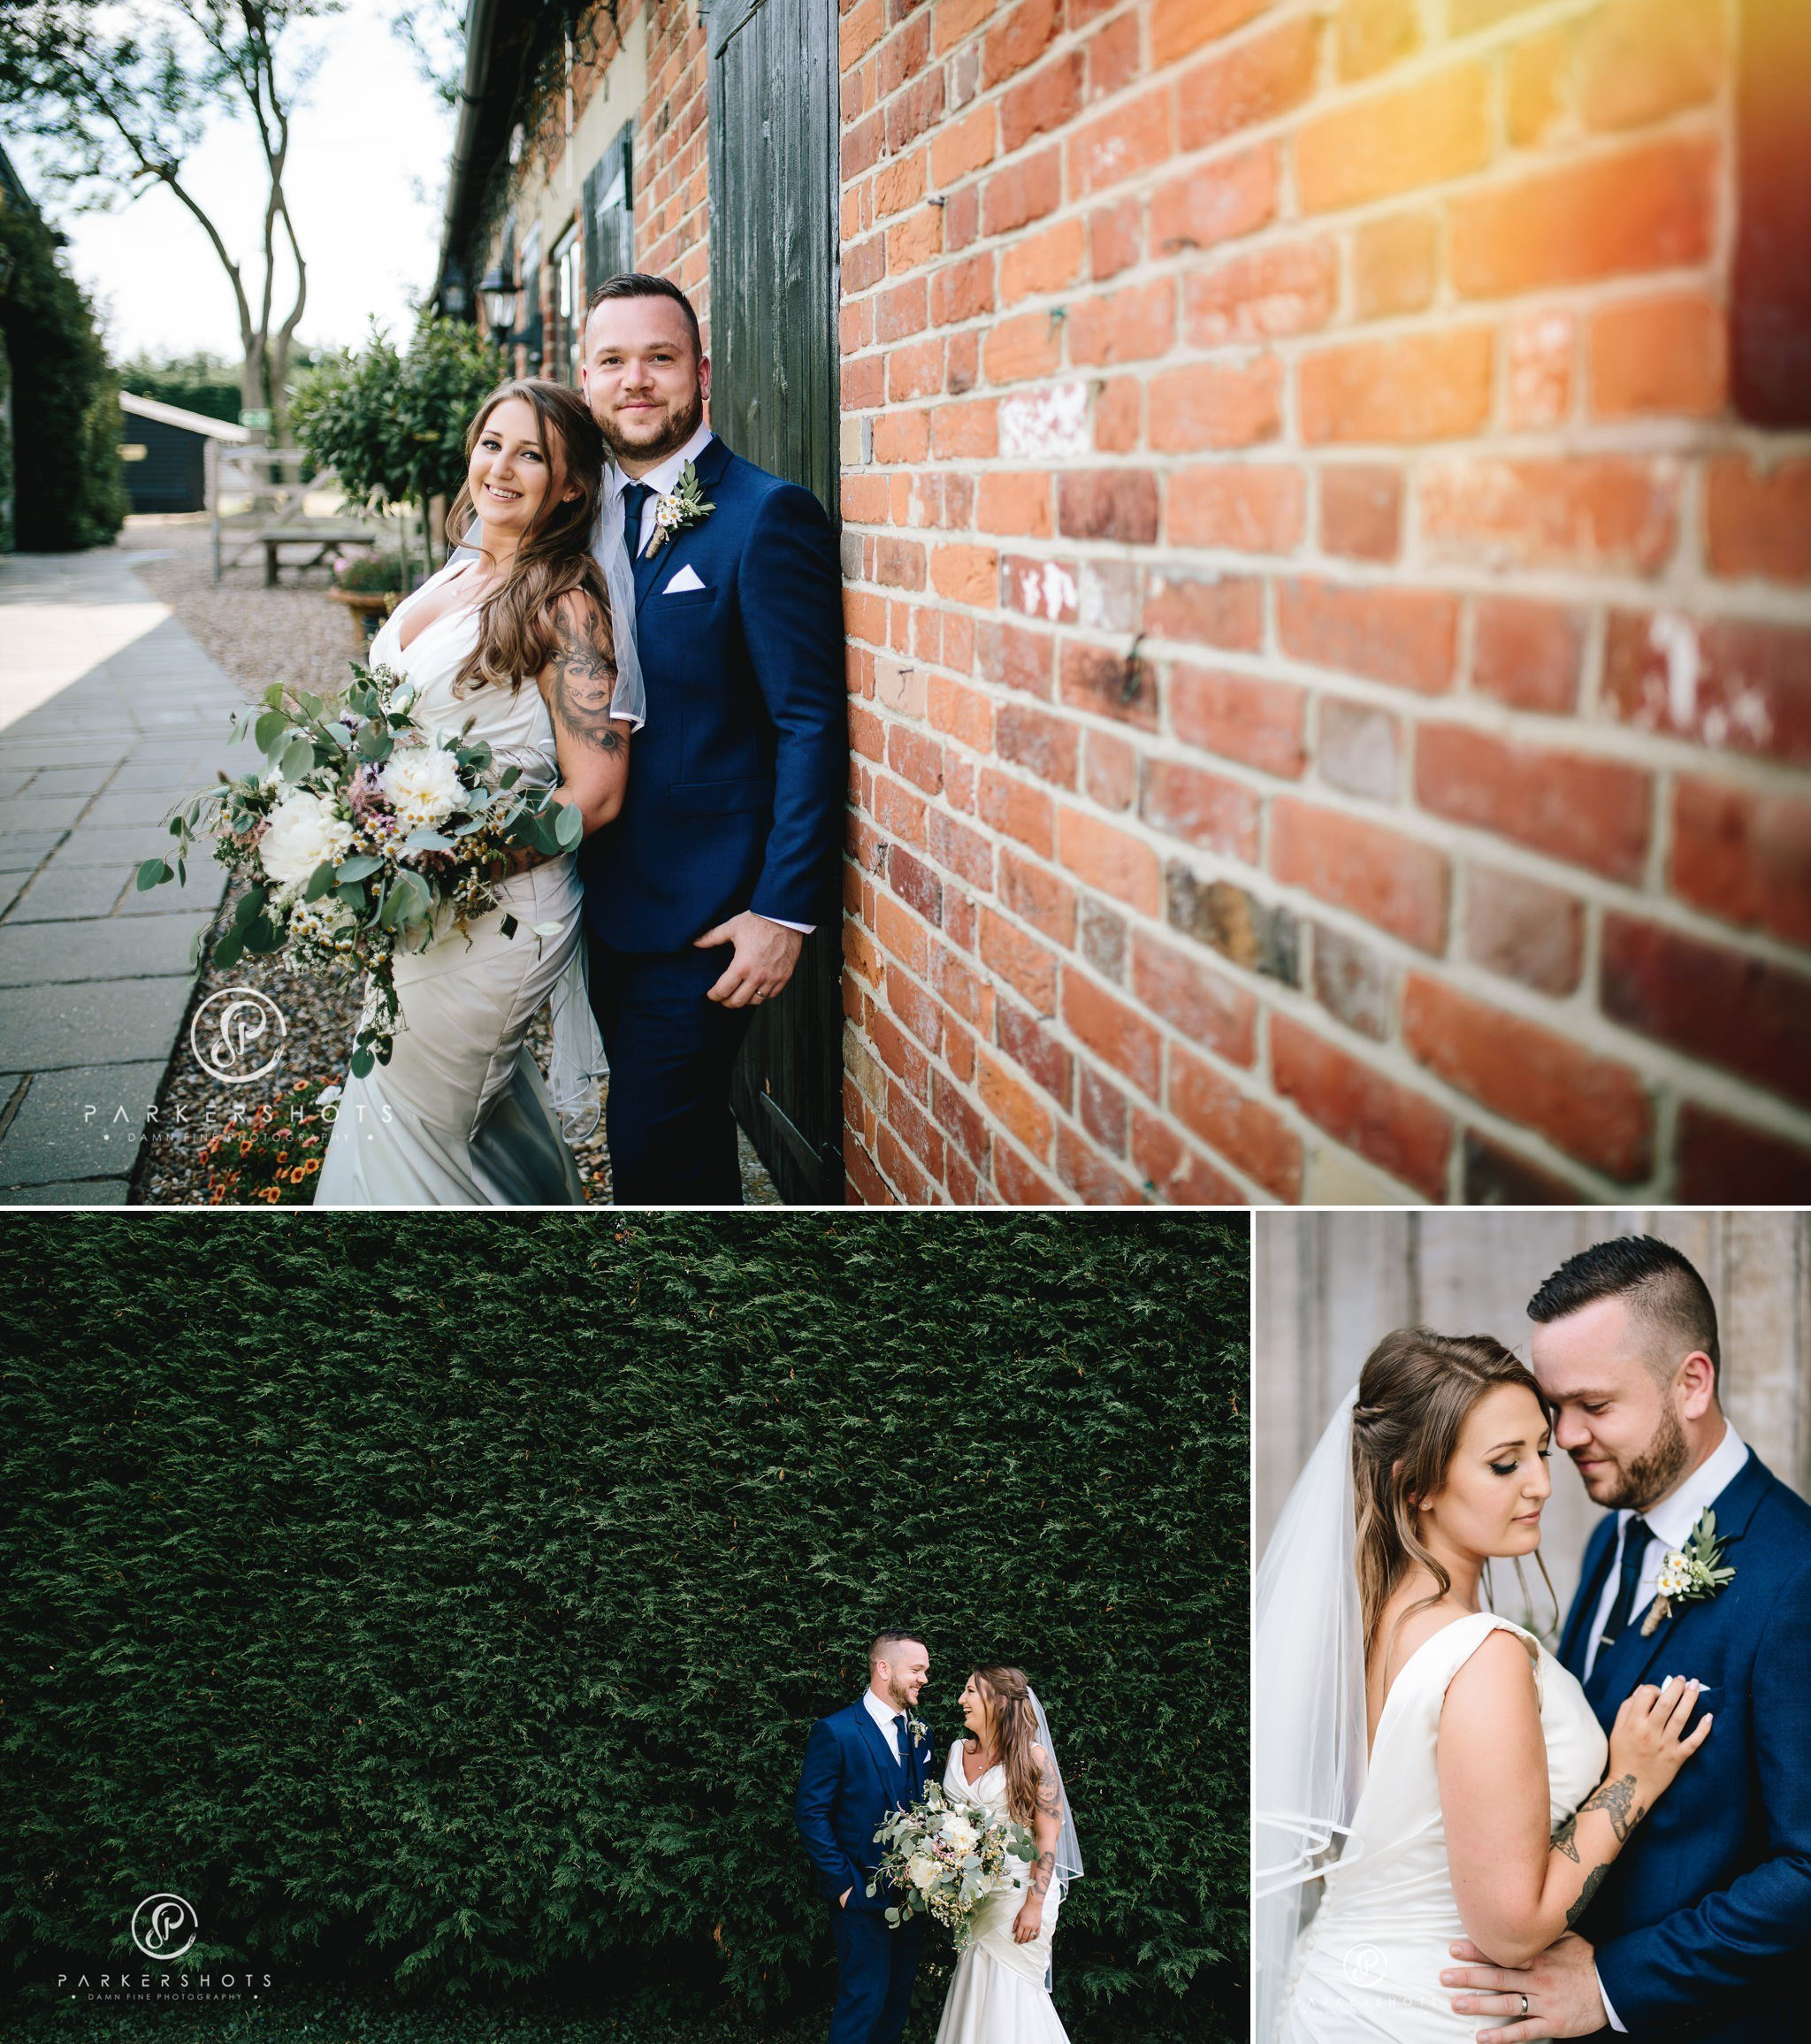 Alternative wedding photography of bride and groom at Winters Barns